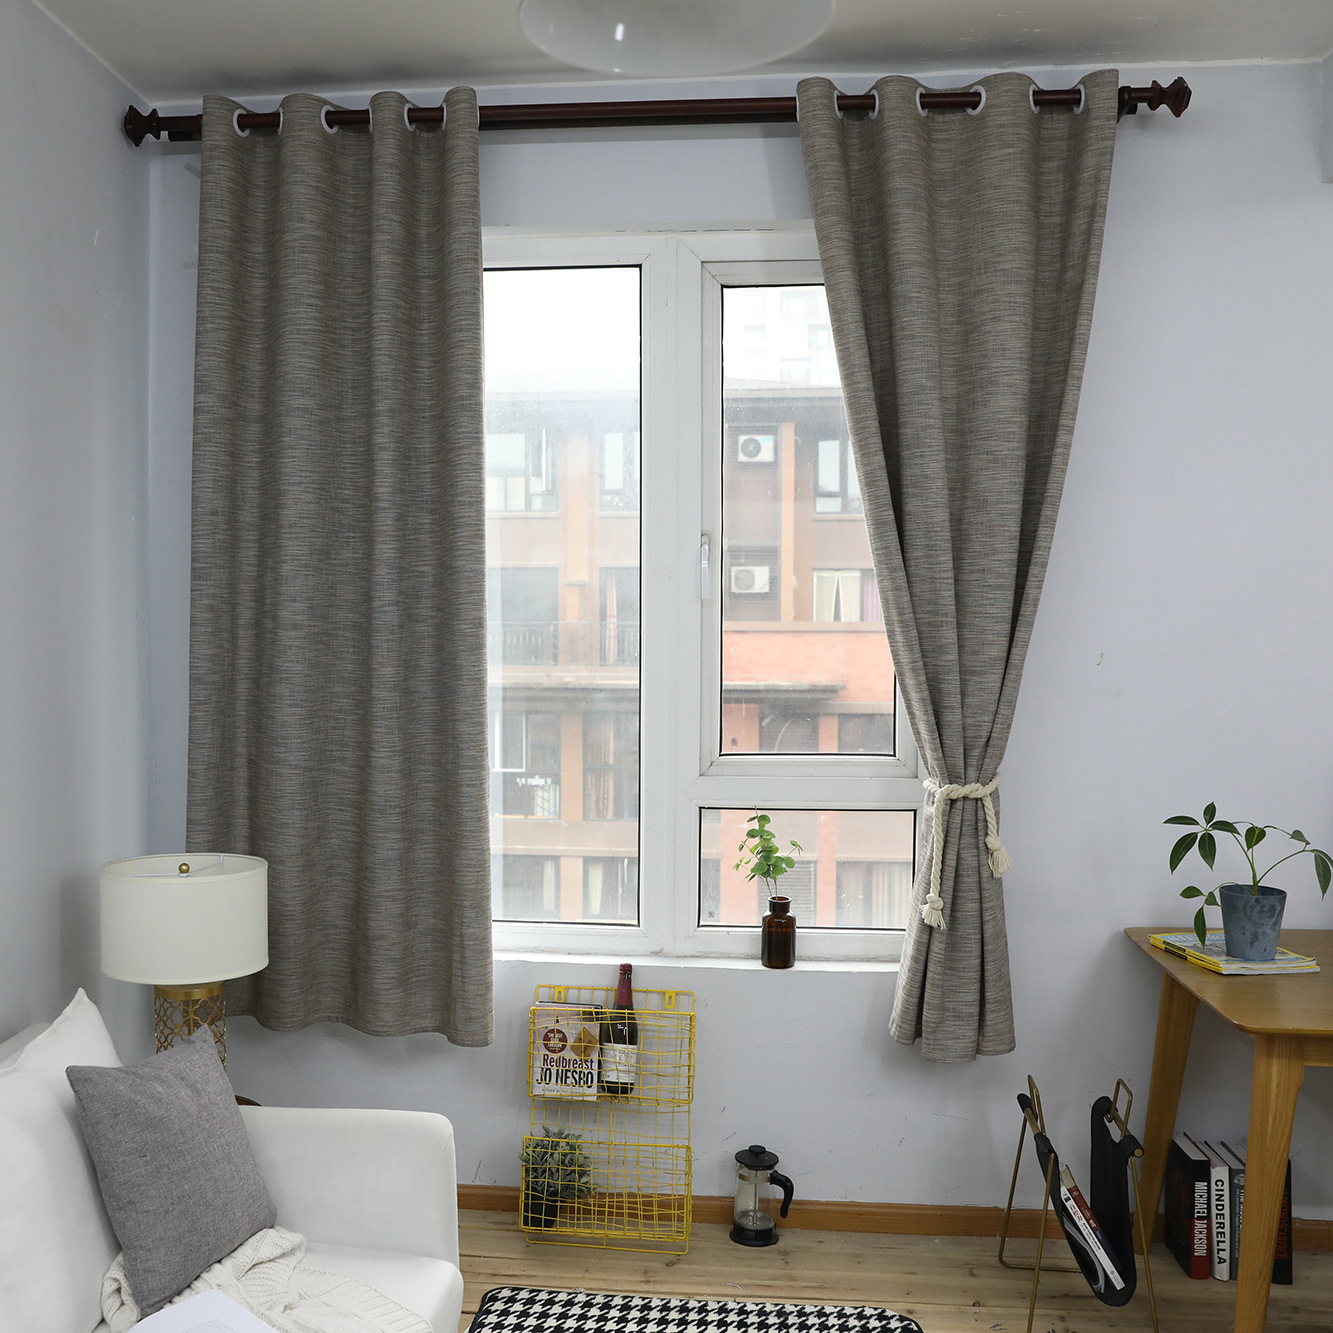 Modern Linen Simple Semi-blackout Curtain Finished Sunshade Curtain Bay Window Bedroom French Window Bedroom Living Room 55*85